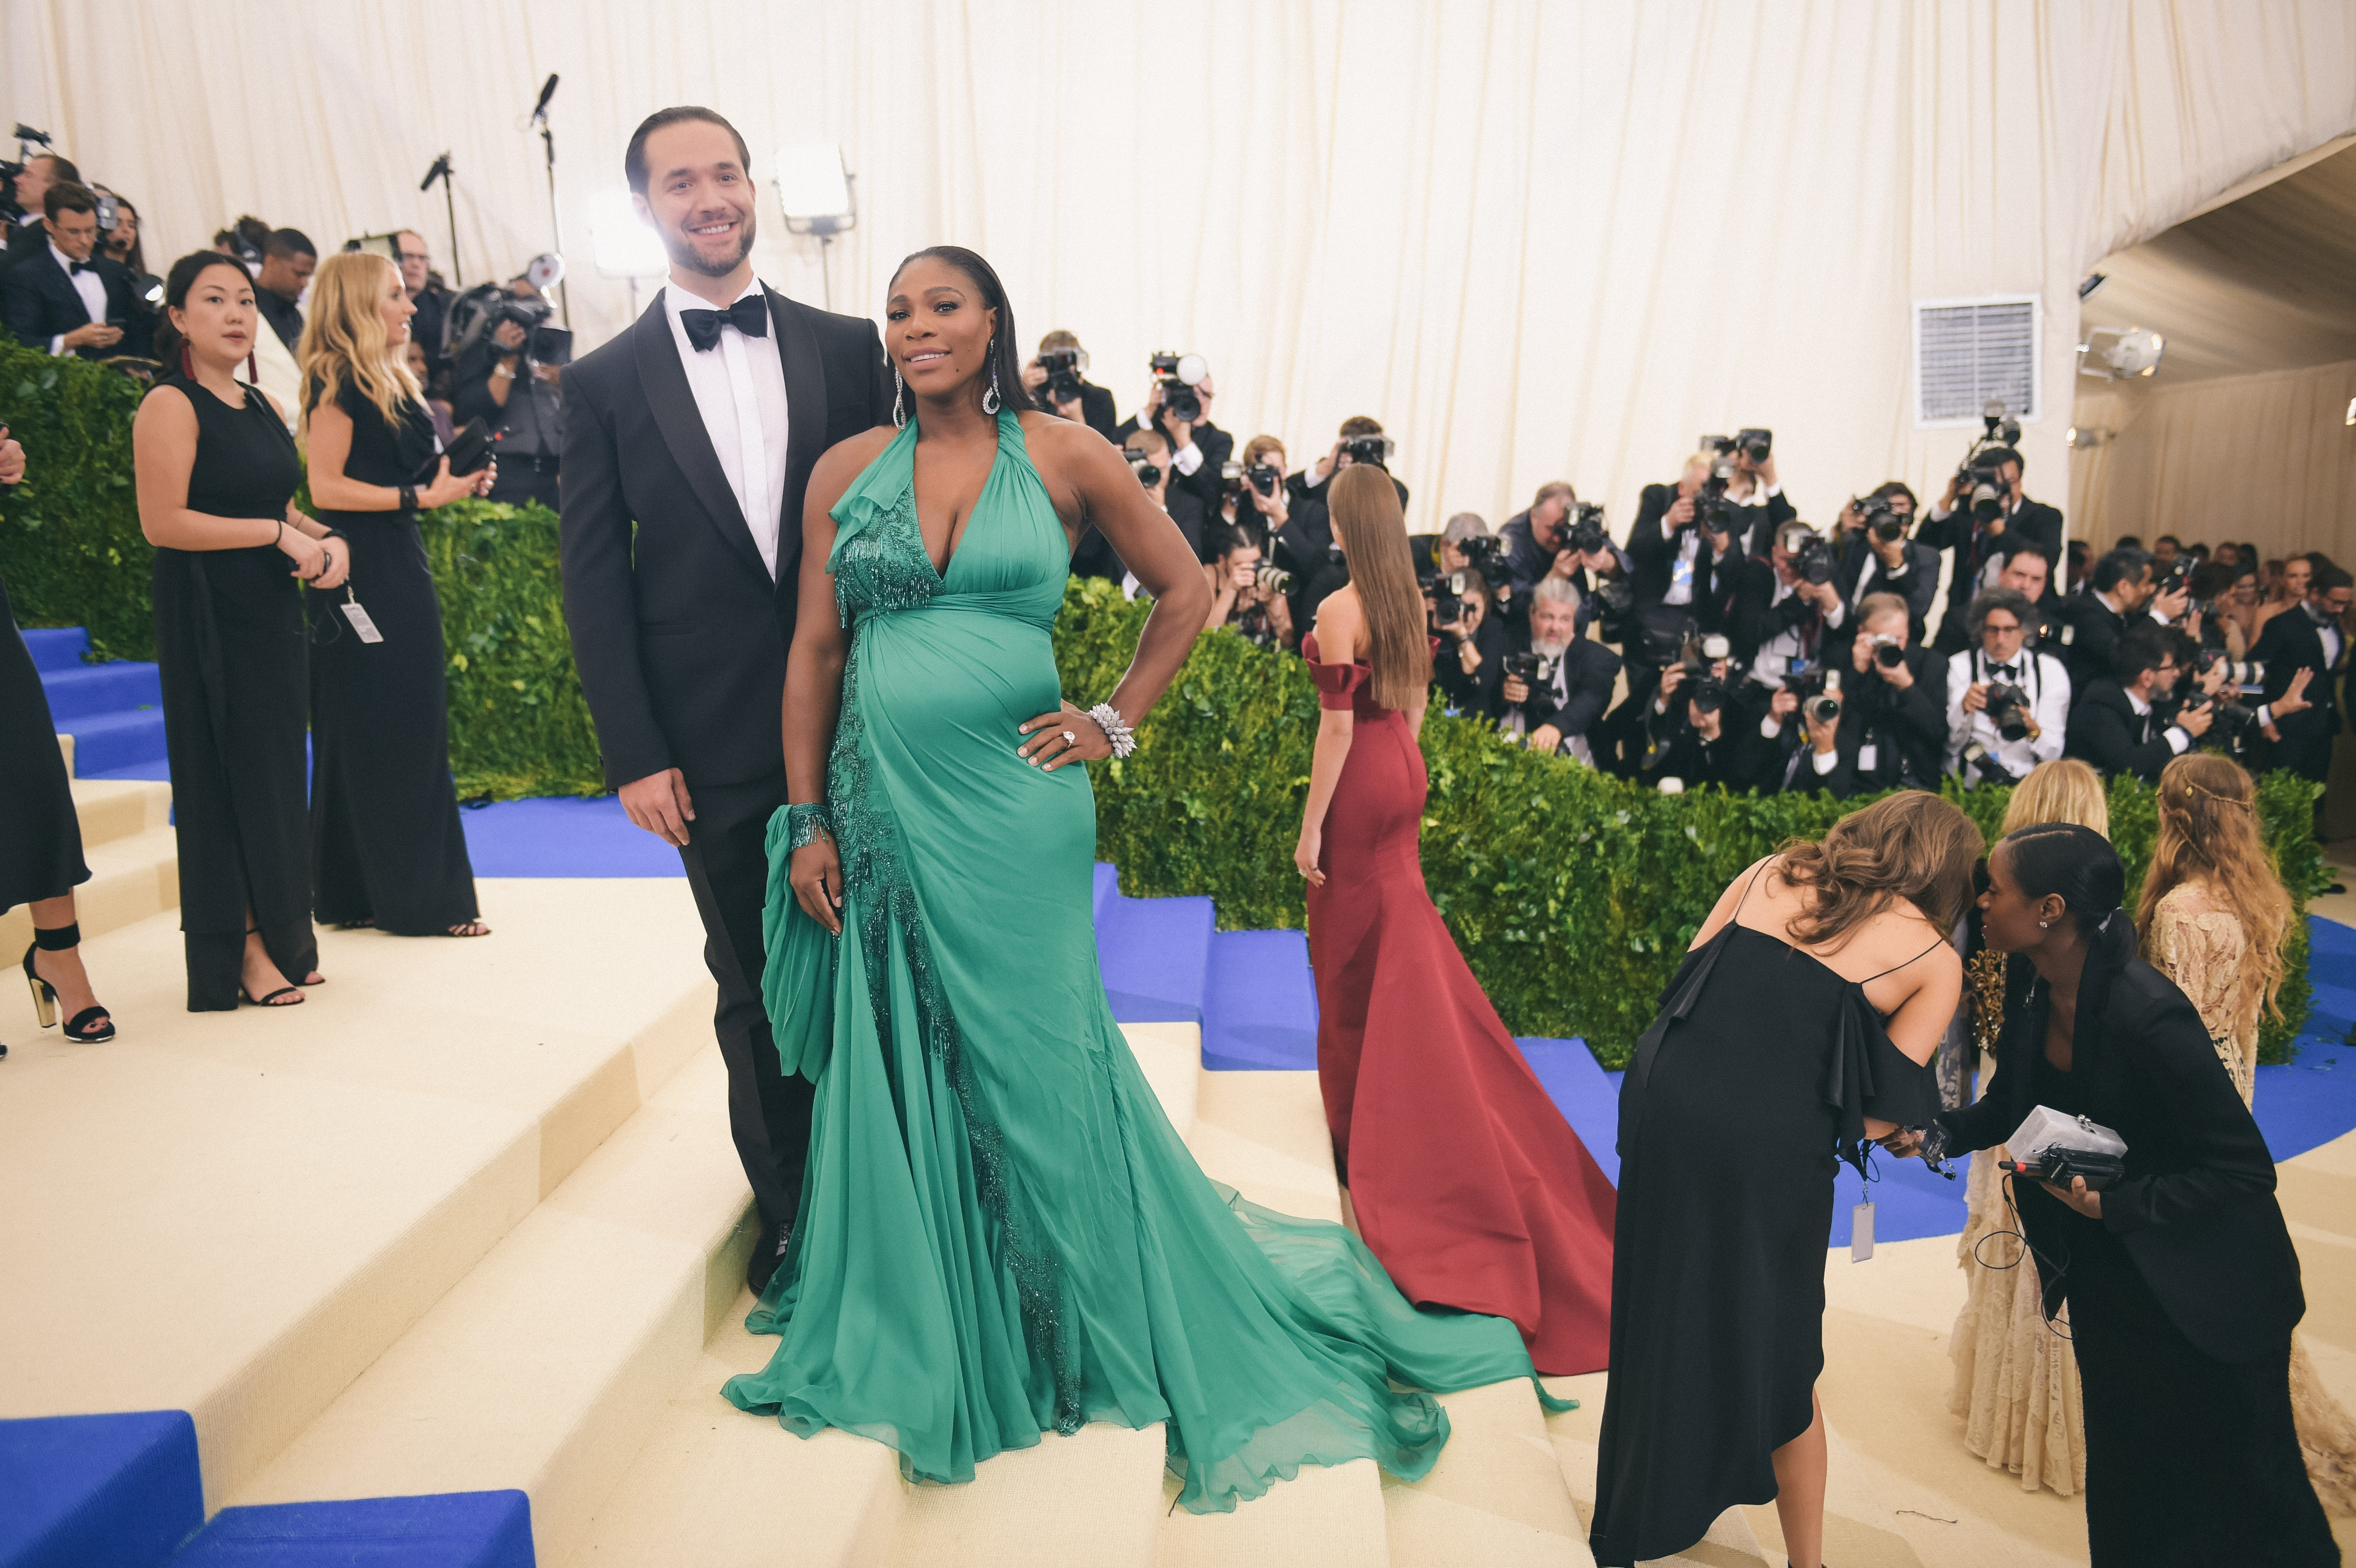 Alexis Ohanian and Serena Williams attend the  Rei Kawakubo/Comme des Garcons: Art Of The In-Between  Costume Institute Gala at Metropolitan Museum of Art on May 1, 2017 in New York City.